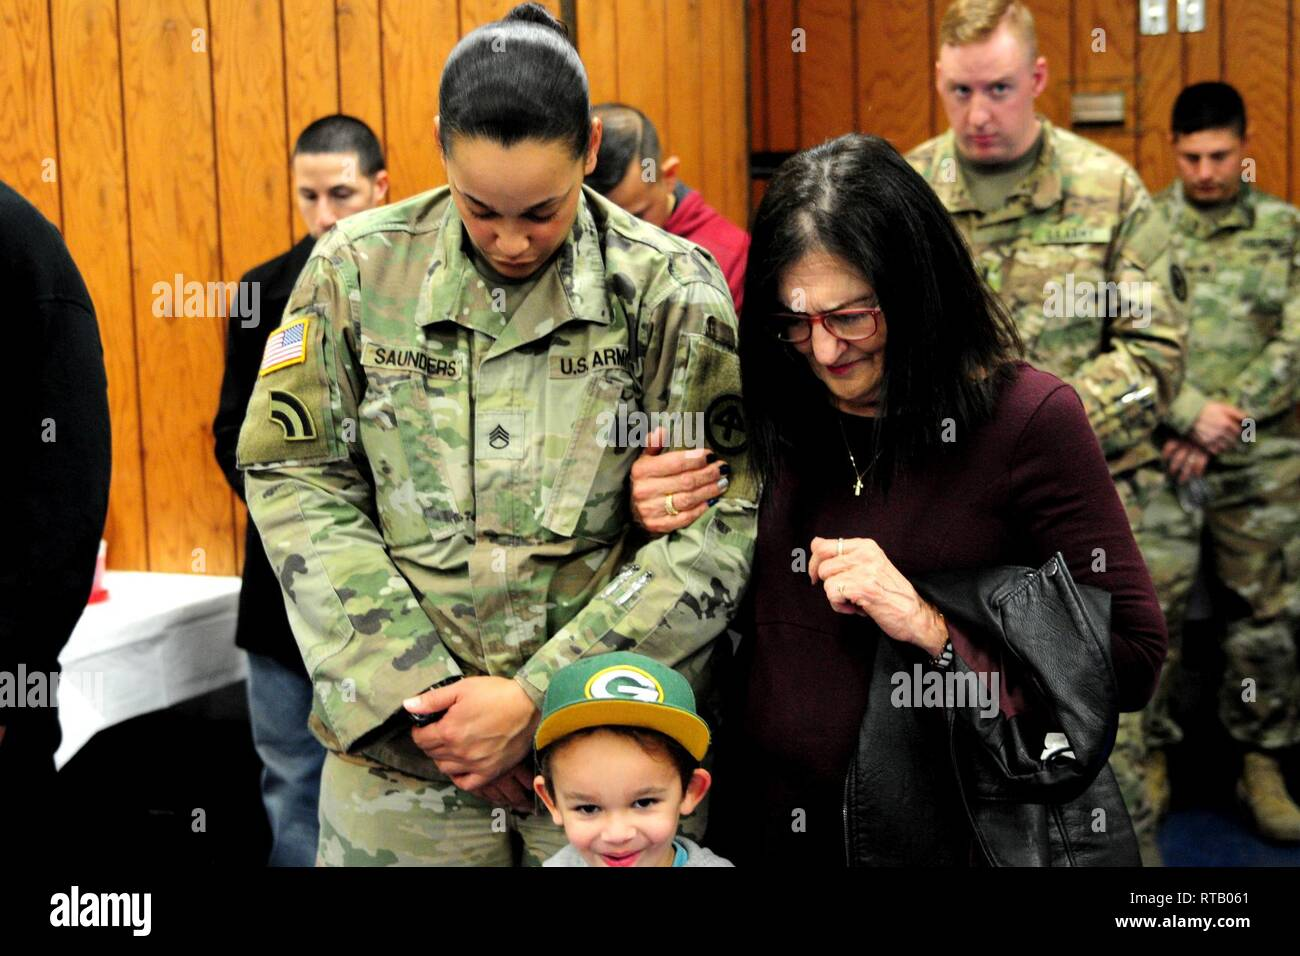 Staff Sgt. Stephanie L. Saunders bows her head during the benediction portion of the farewell ceremony. Soldiers from Hotel Company, 250th Brigade Support Battalion, said farewell to family, friends and New Jersey National Guard leadership at a farewell ceremony Feb. 5, 2019 at the Veterans of Foreign Wars Post 5084 in Elmwood Park, New Jersey. The Teaneck-based Soldiers will deploy to the Horn of Africa in support of Operation Enduring Freedom. - Stock Image